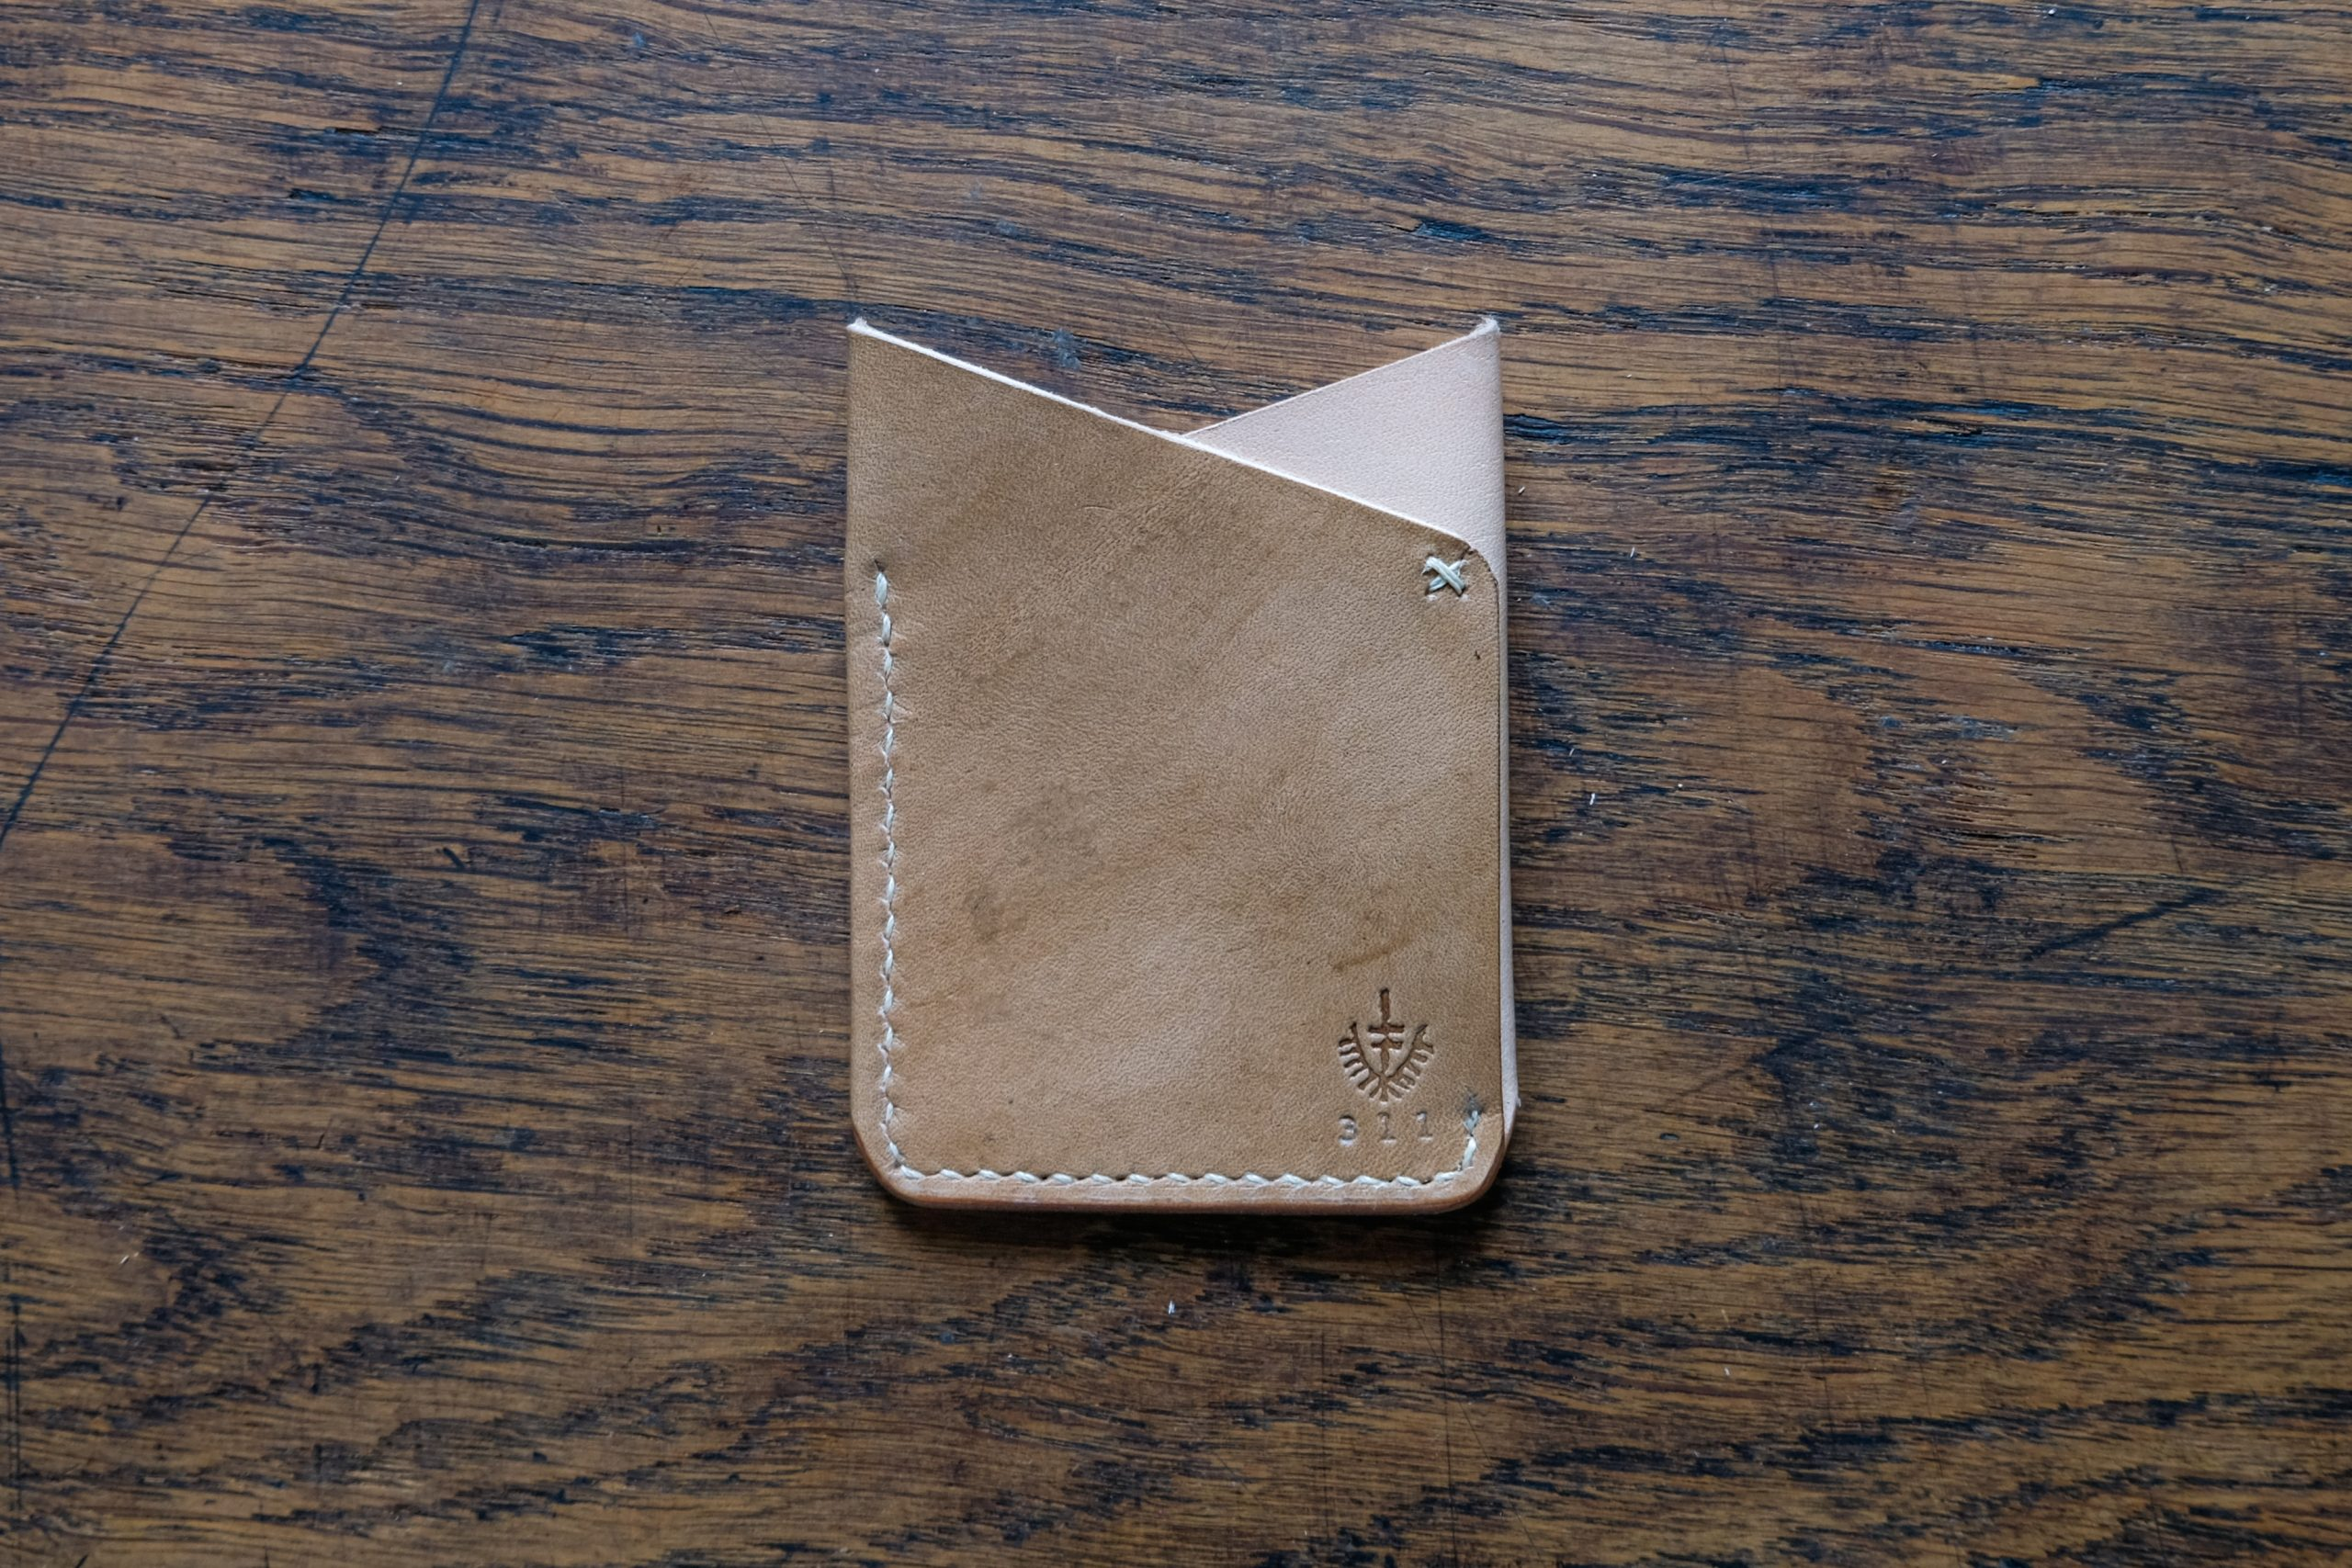 lerif designs leather fox ears card holder front demo on wood background